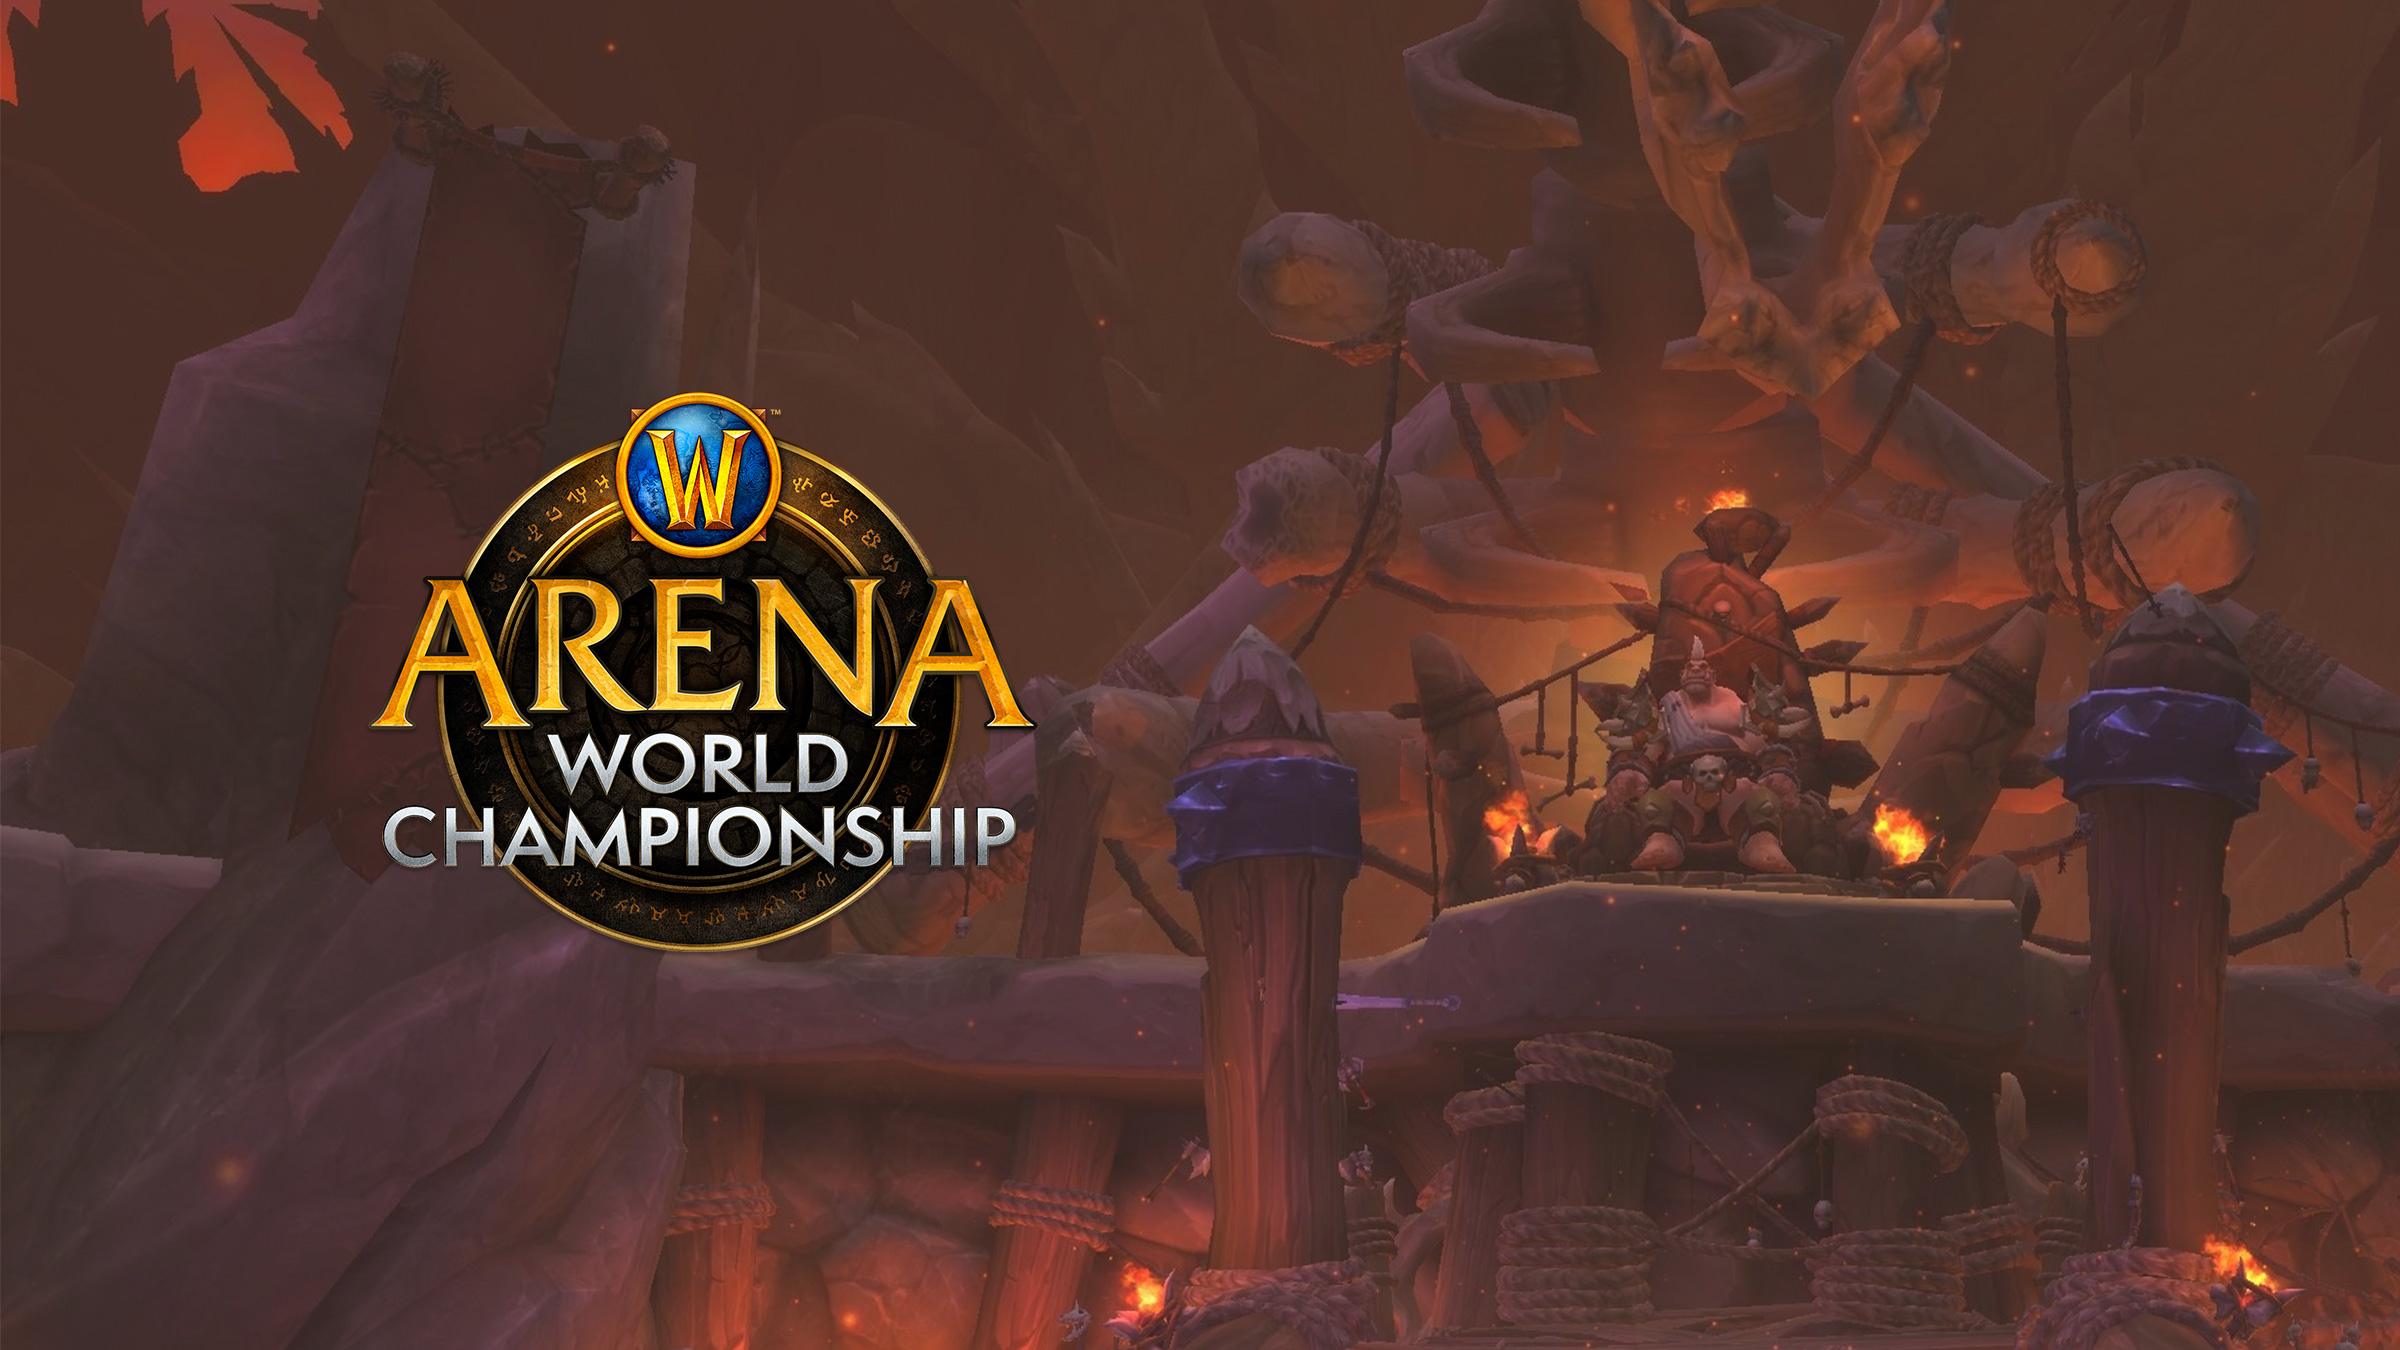 Meet the BlizzCon 2019 Arena World Championship Winners!